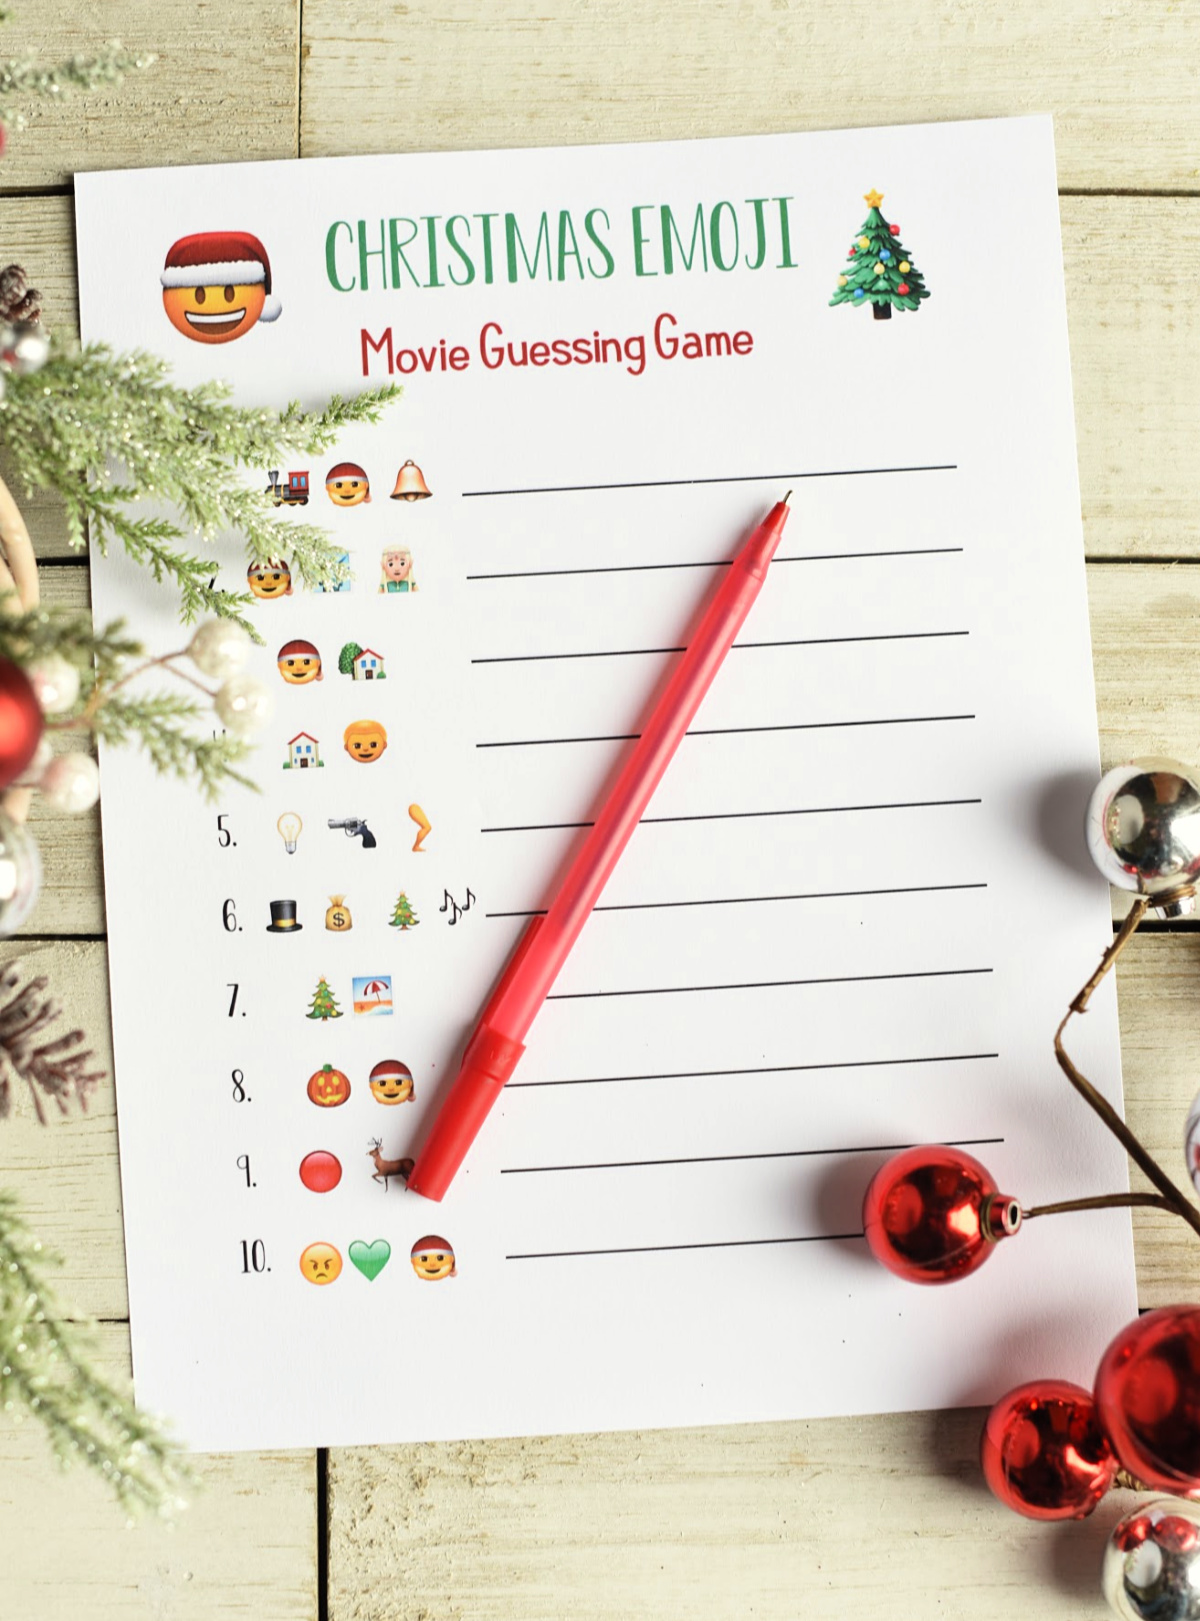 Fun Christmas Party Games: Print and play this emoji guessing game. 3 versions to try-guess the Christmas song or movie (and a kid's version) just from the emojis you see! Great Christmas party game for groups. #christmasparty #christmas #christmasgames